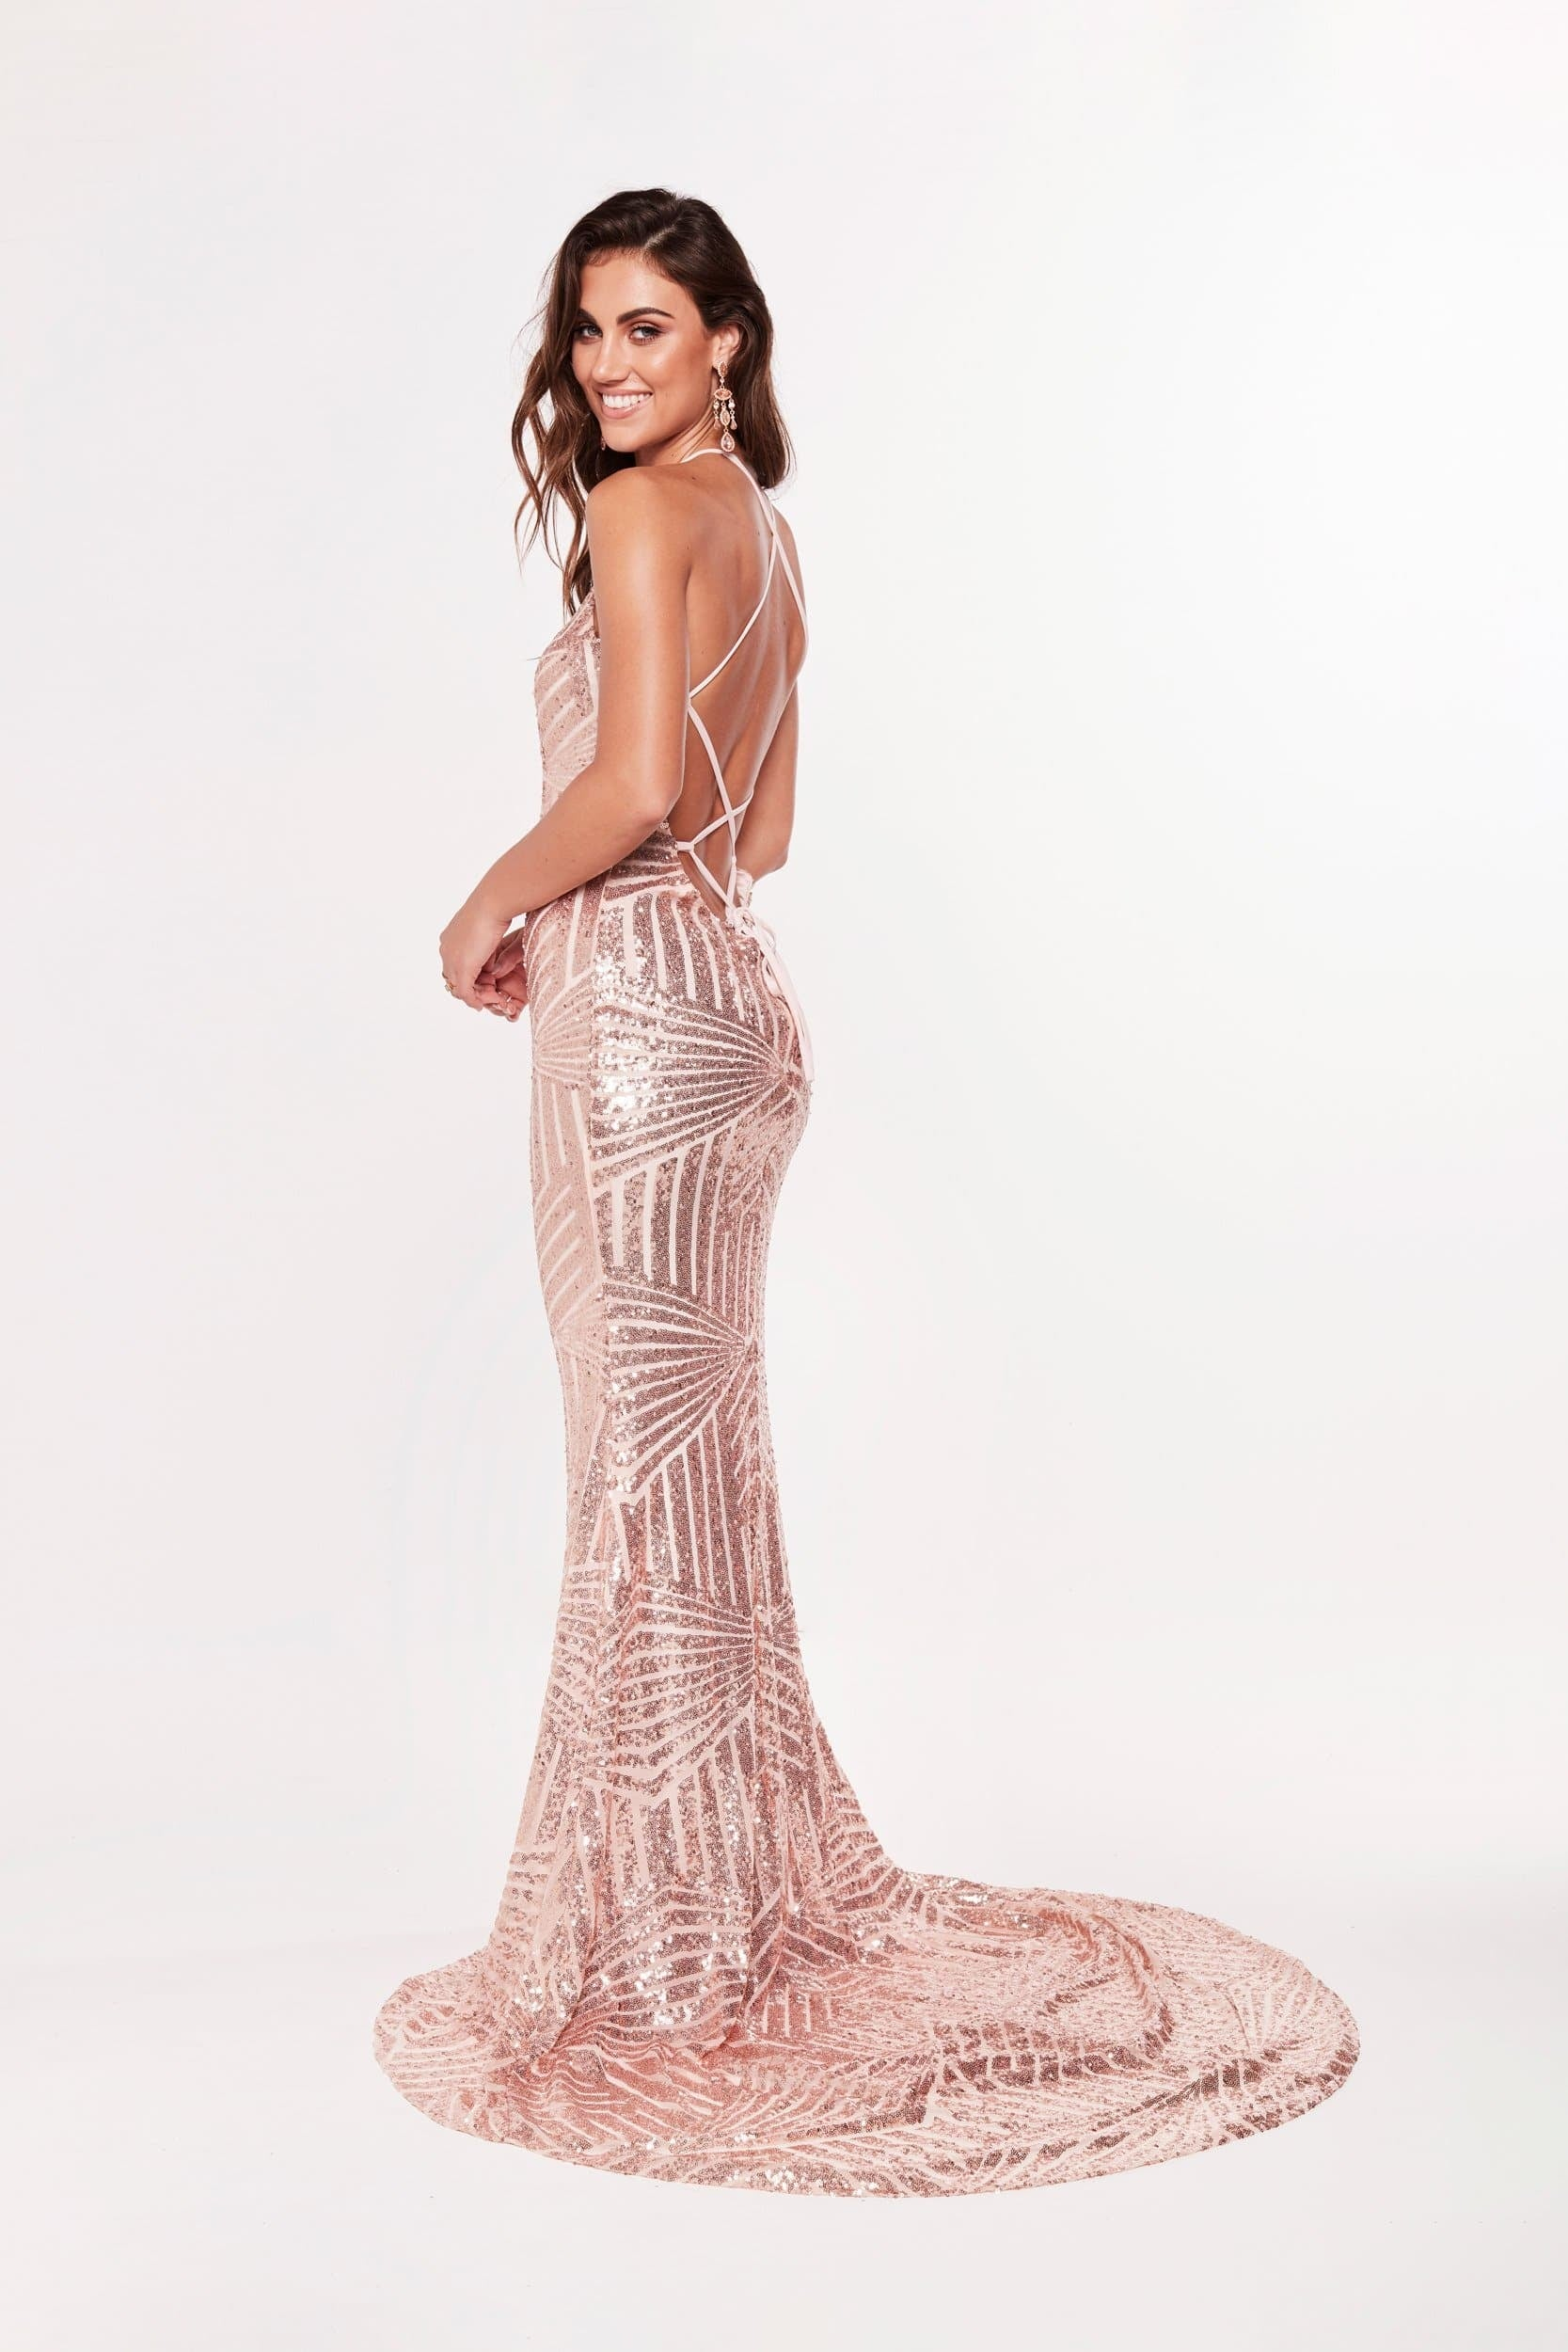 A&N Aniya Gown - High Neck Prom Dress in Rose Gold with Lace up Back ...